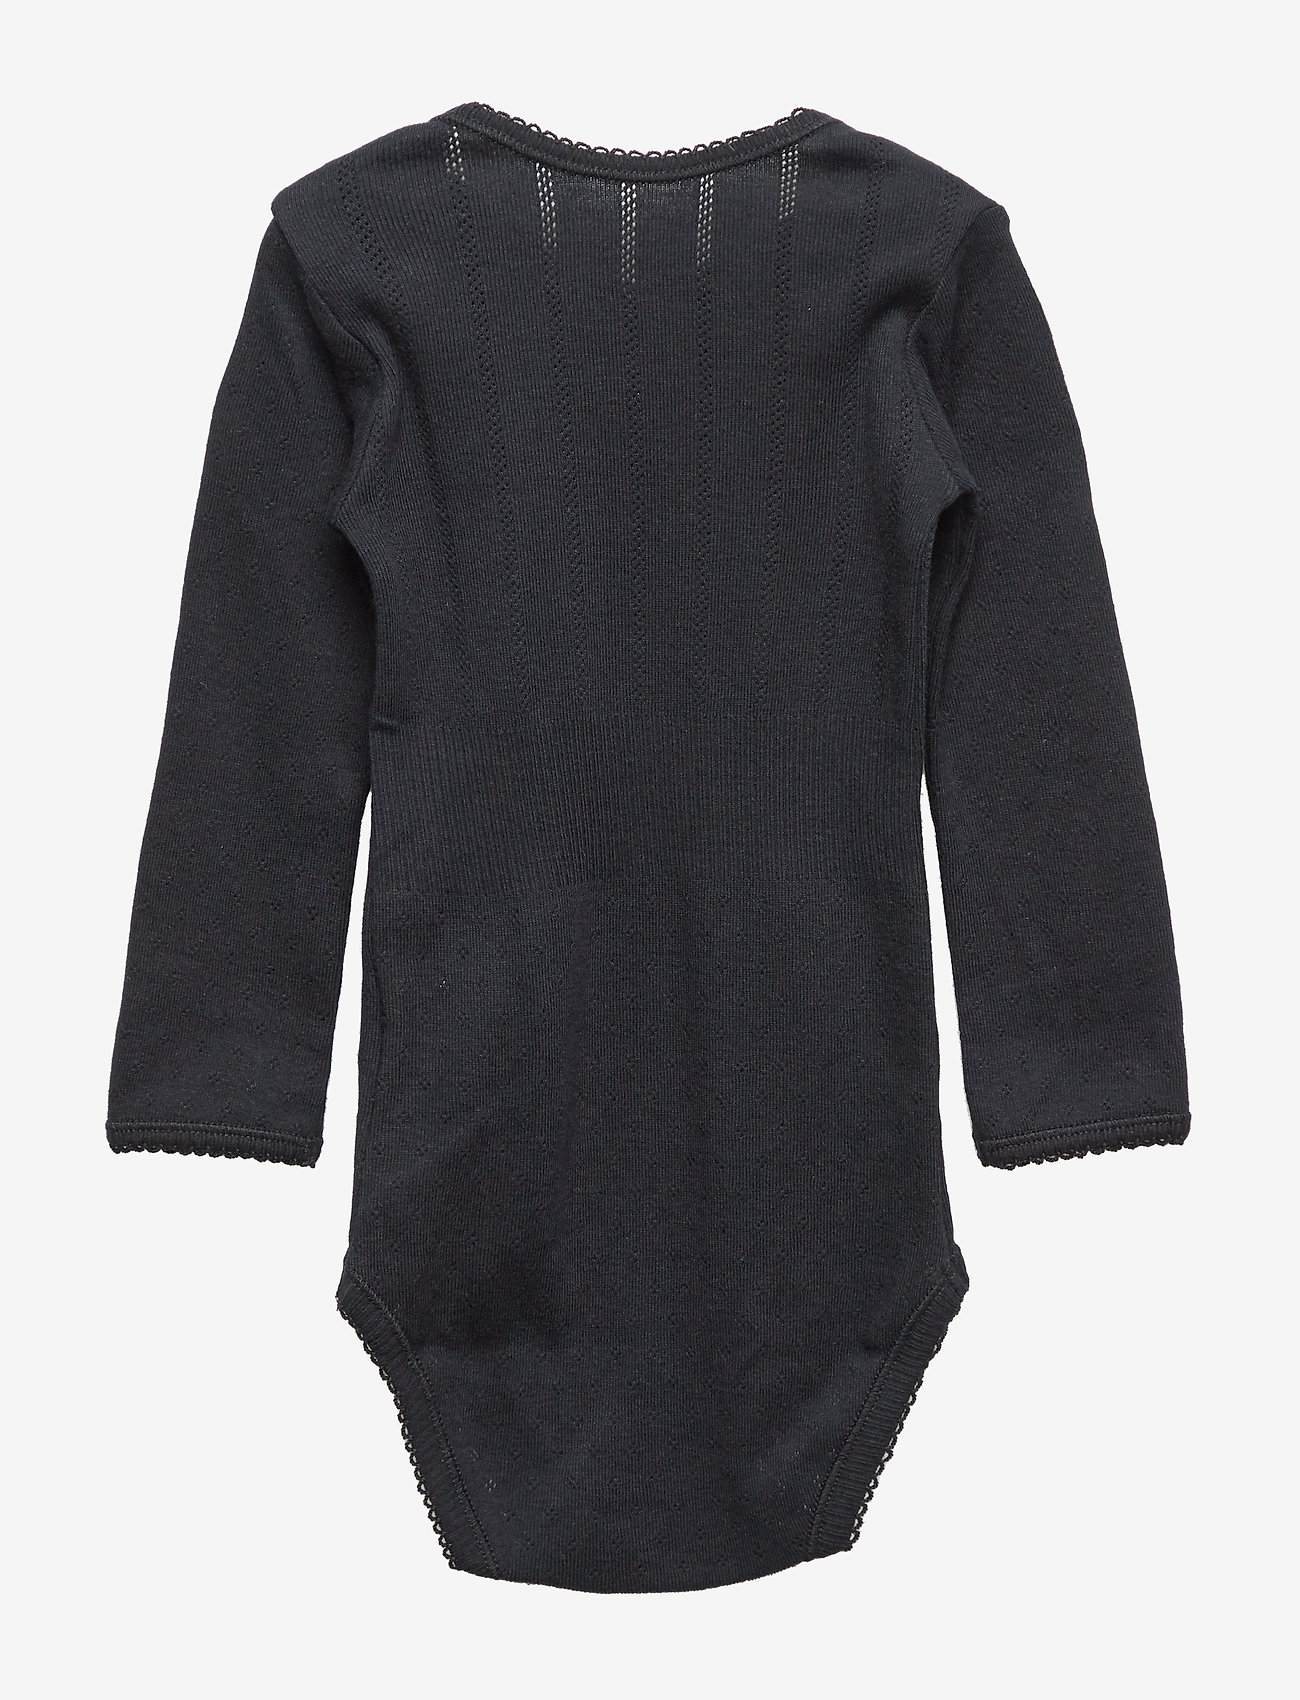 Noa Noa Miniature - Baby Body - long-sleeved - black - 1